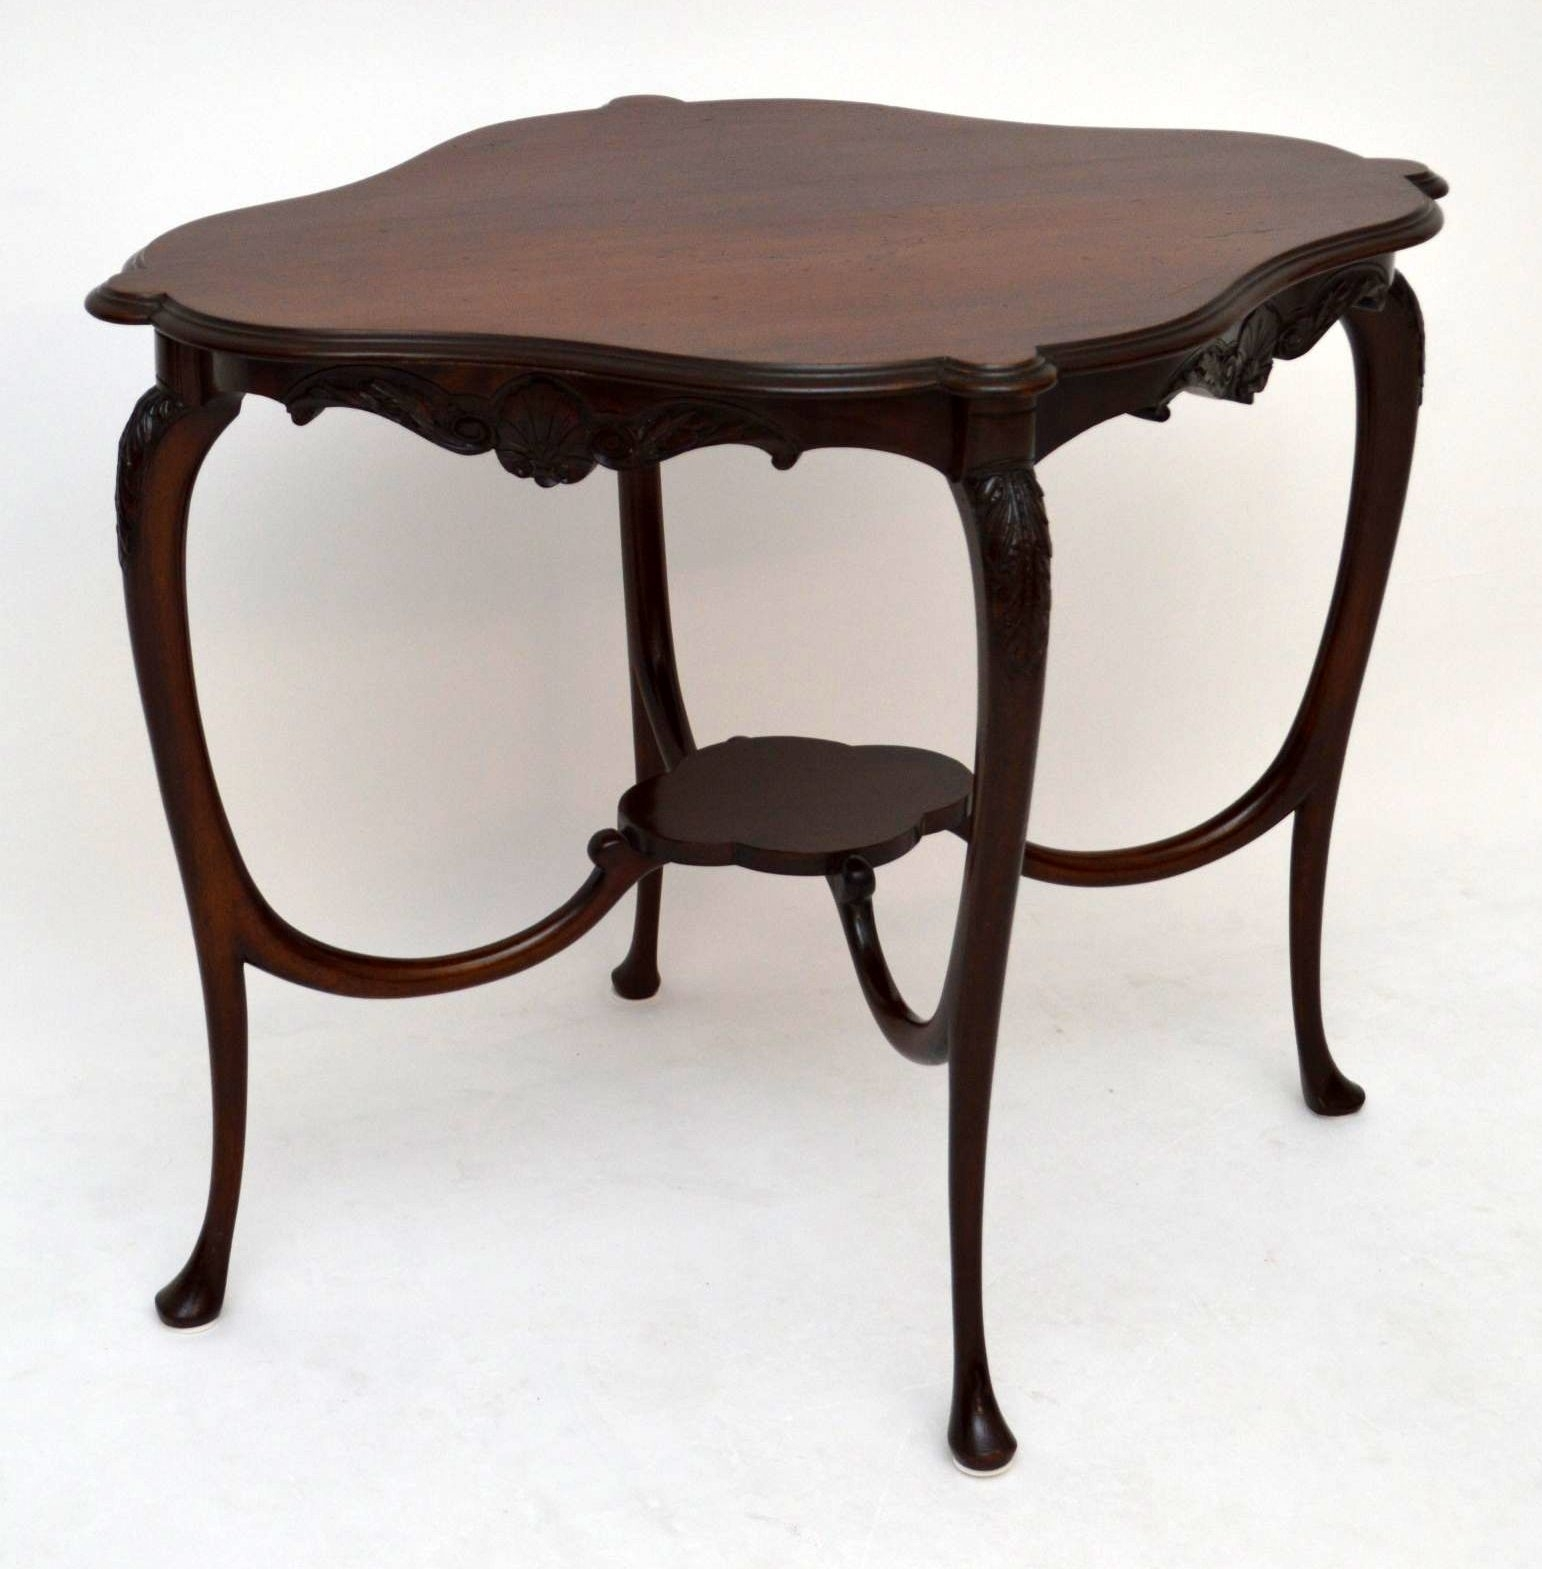 Antique Art Nouveau Mahogany Occasional Table | Marylebone Antiques with regard to Antiqued Art Deco Coffee Tables (Image 4 of 30)